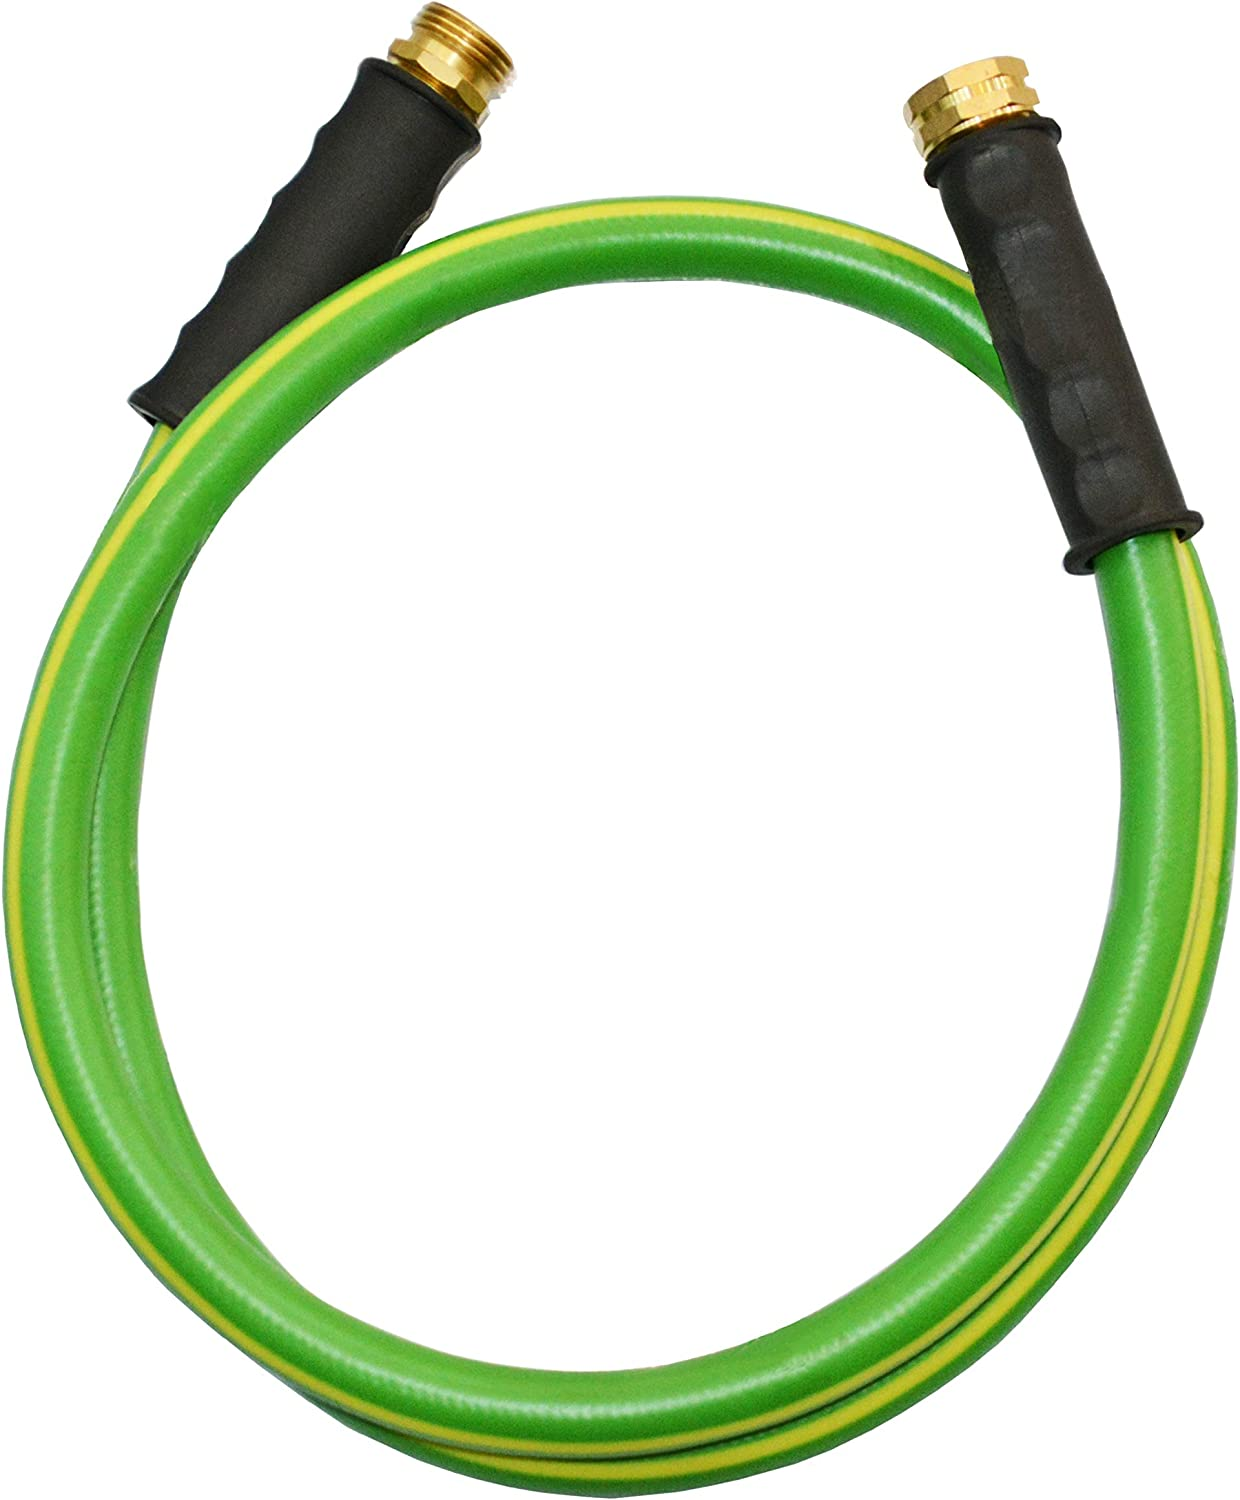 HQMPC Garden Hose Durable PVC Non Kinking Heavy Water Hose with Brass Hose Fittings (5/8